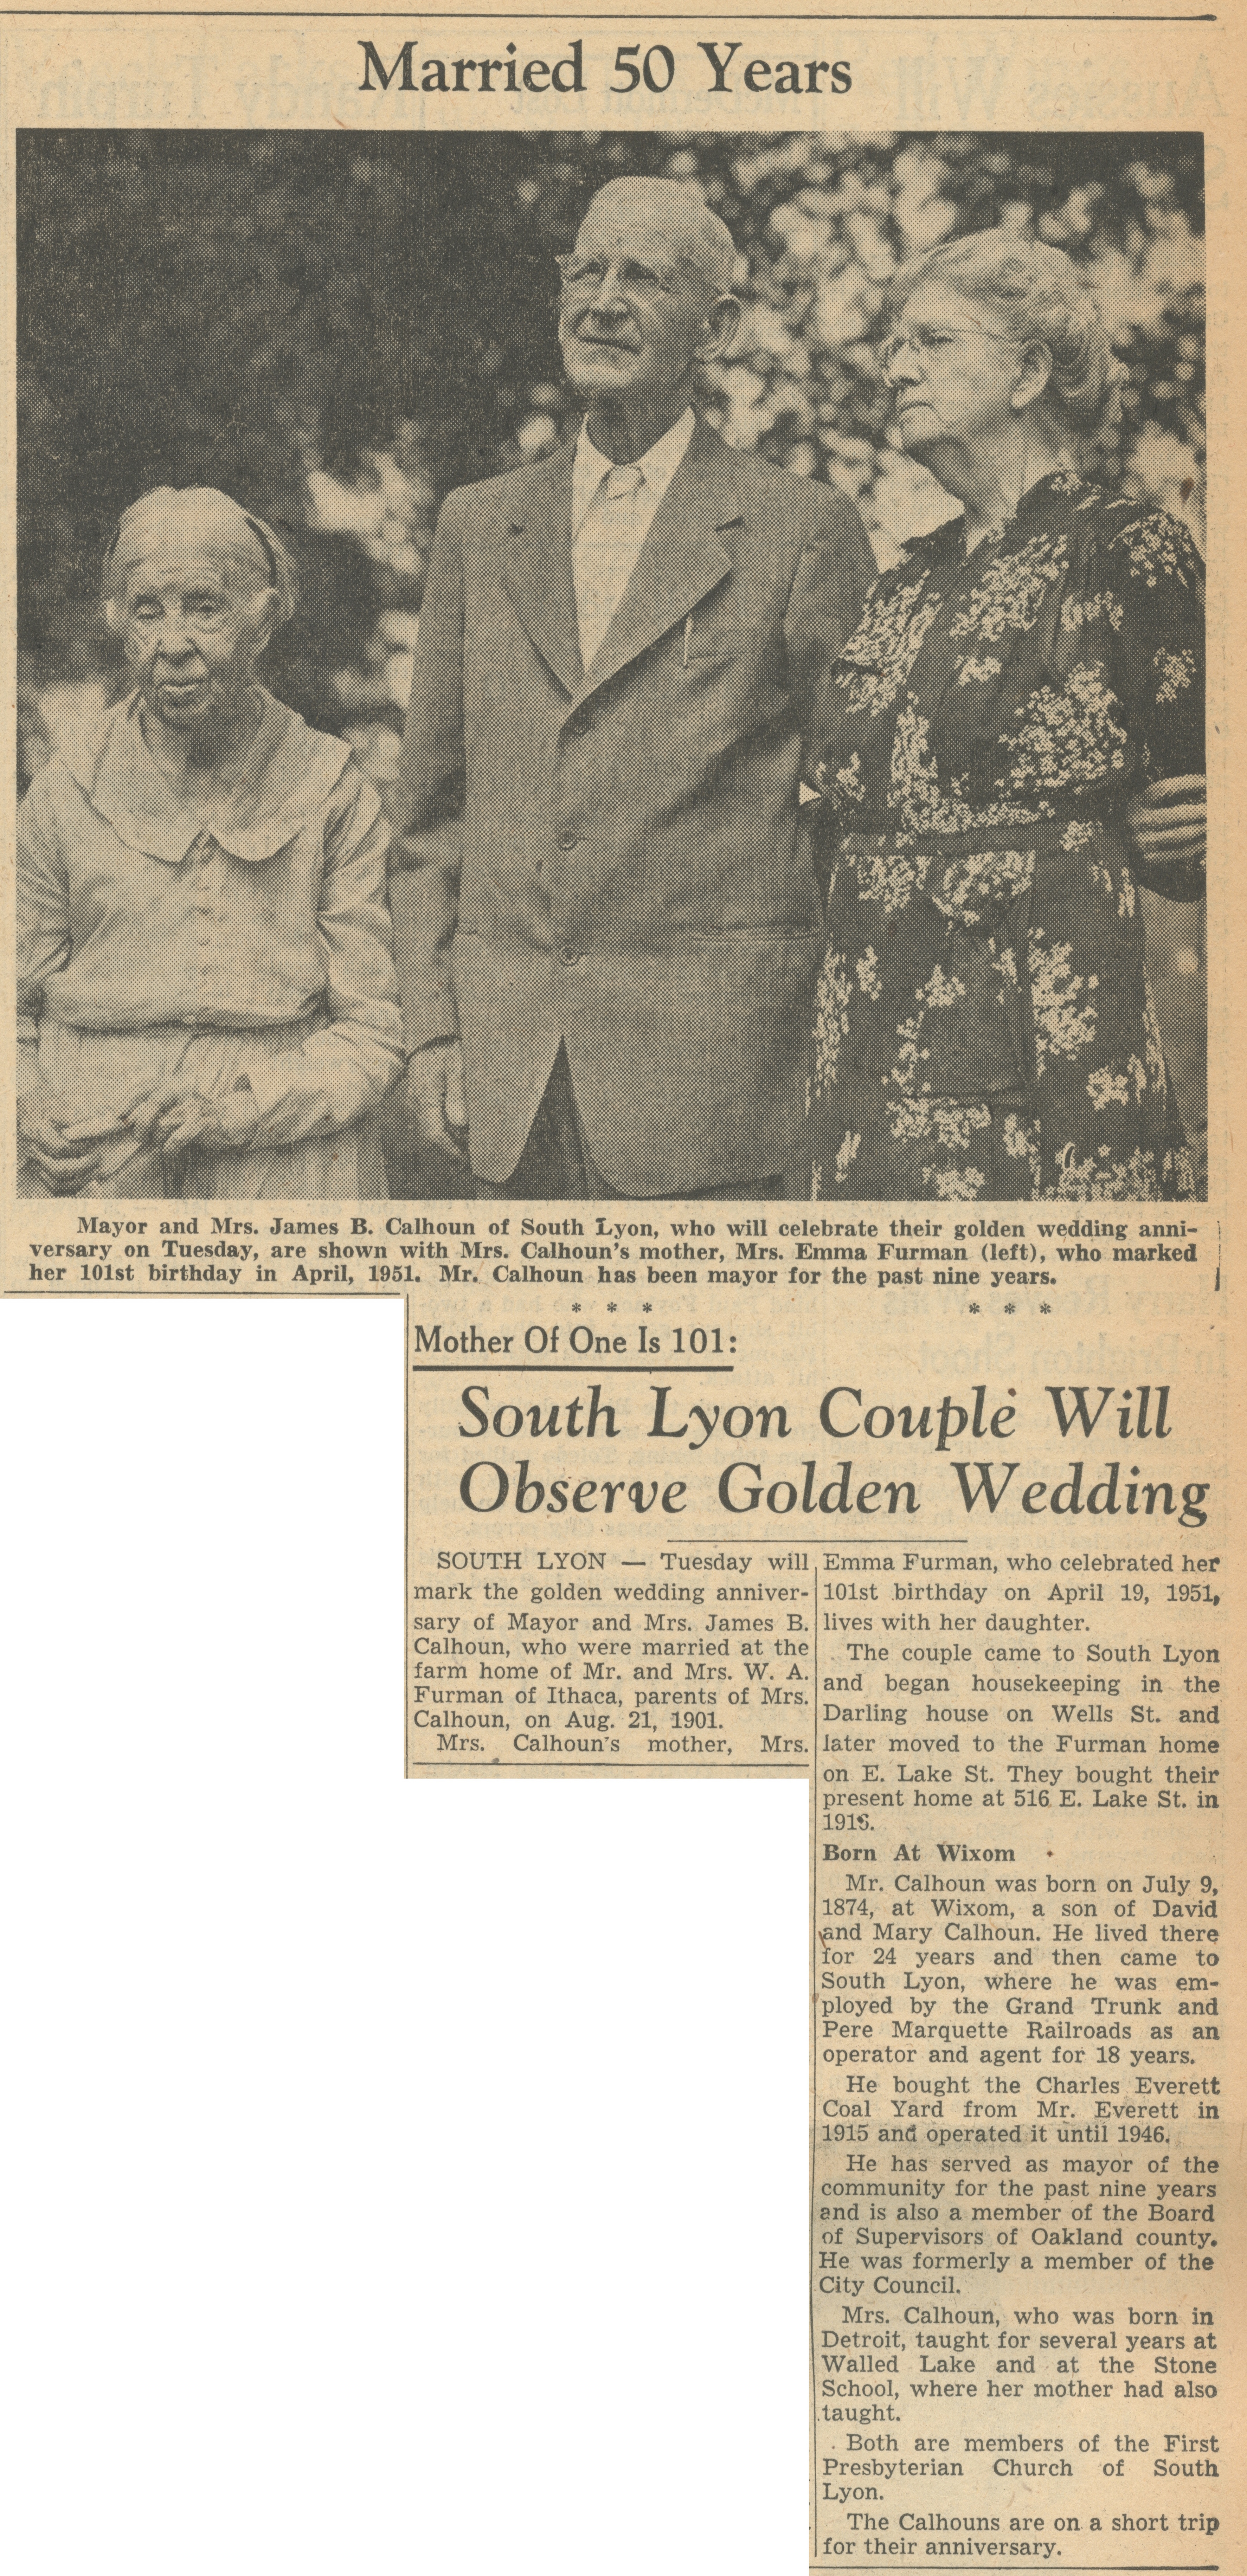 South Lyon Couple Will Observe Golden Wedding image